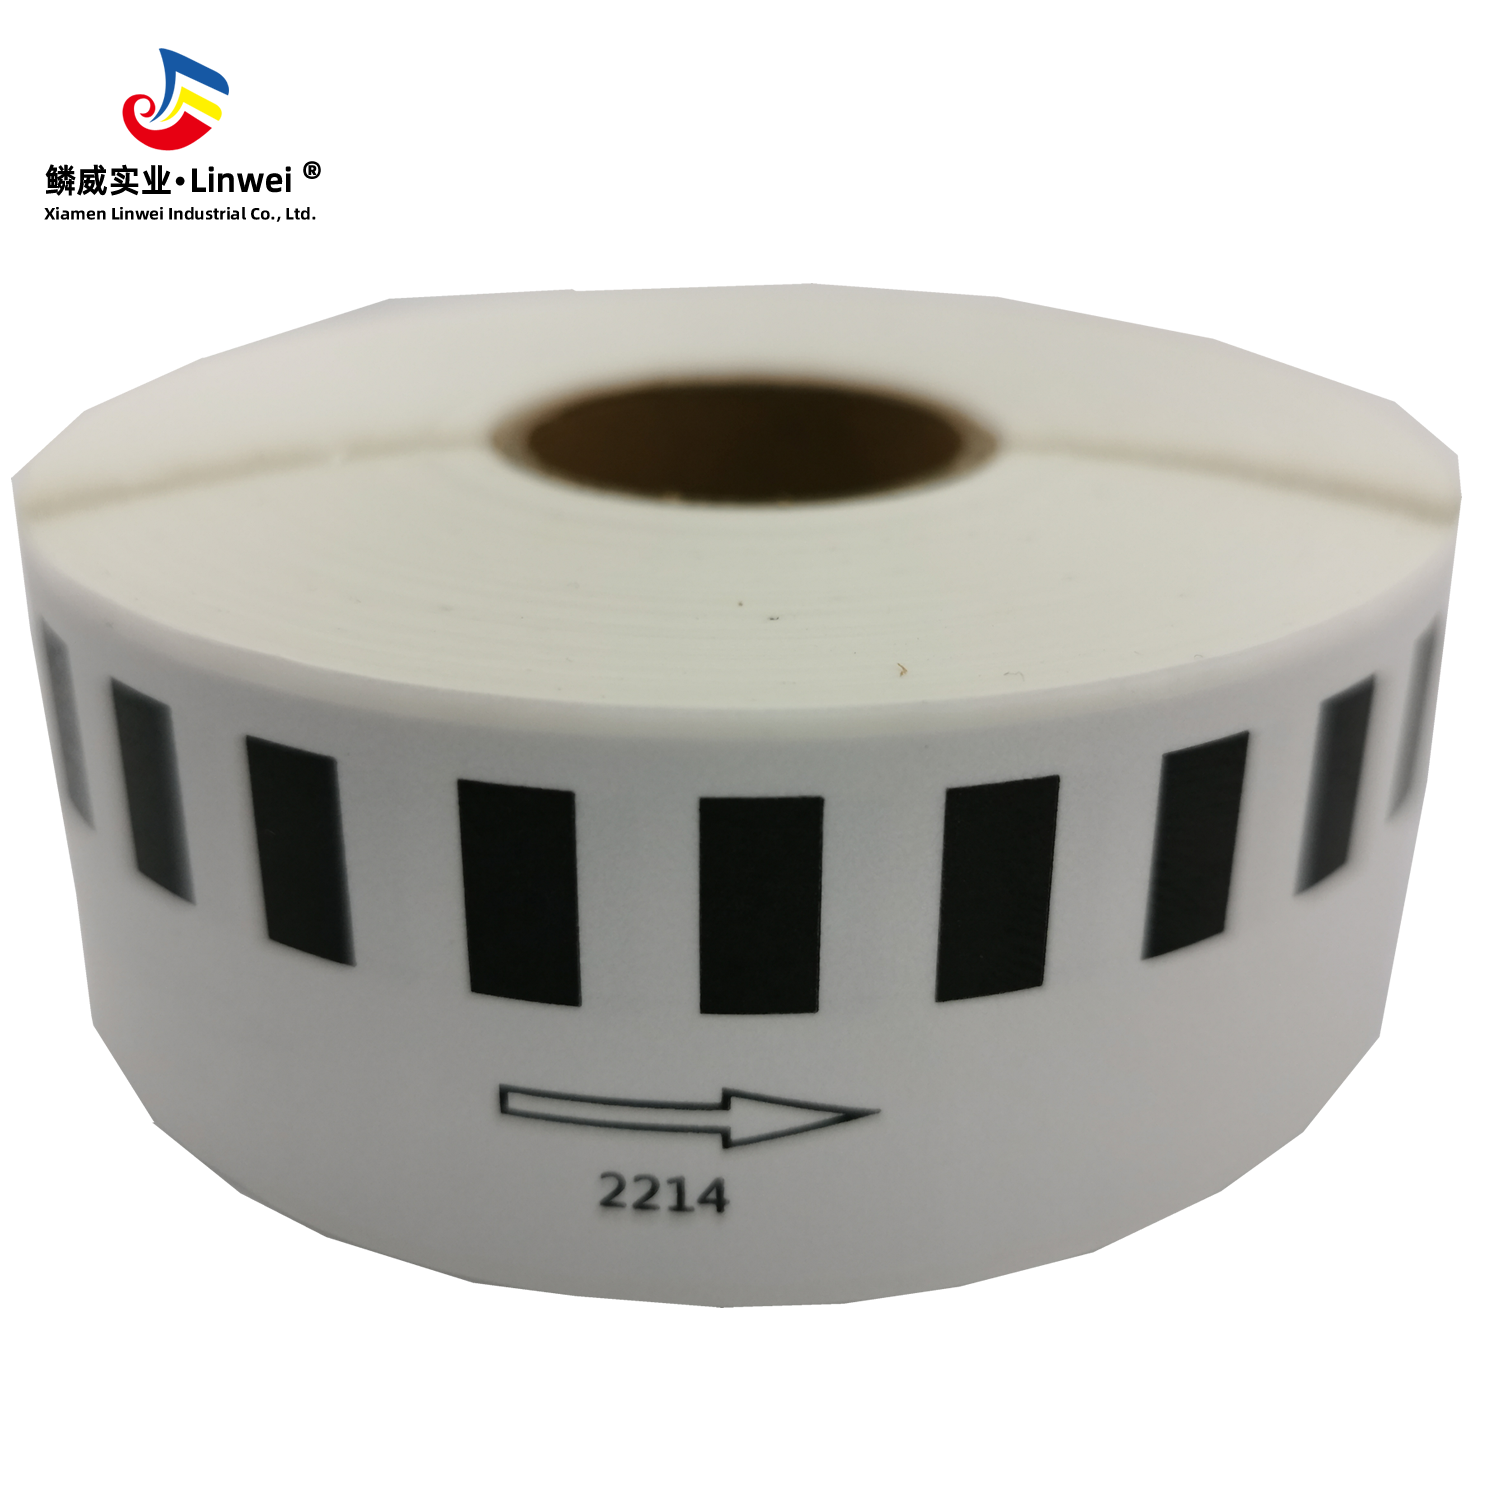 Compatible with Brother DK-2214 DK2214 Continuous Length Paper Tape <strong>Labels</strong> <strong>P</strong>-Touch 1/2&quot; x <strong>100</strong>' (12mm x 30.4m) Black on White